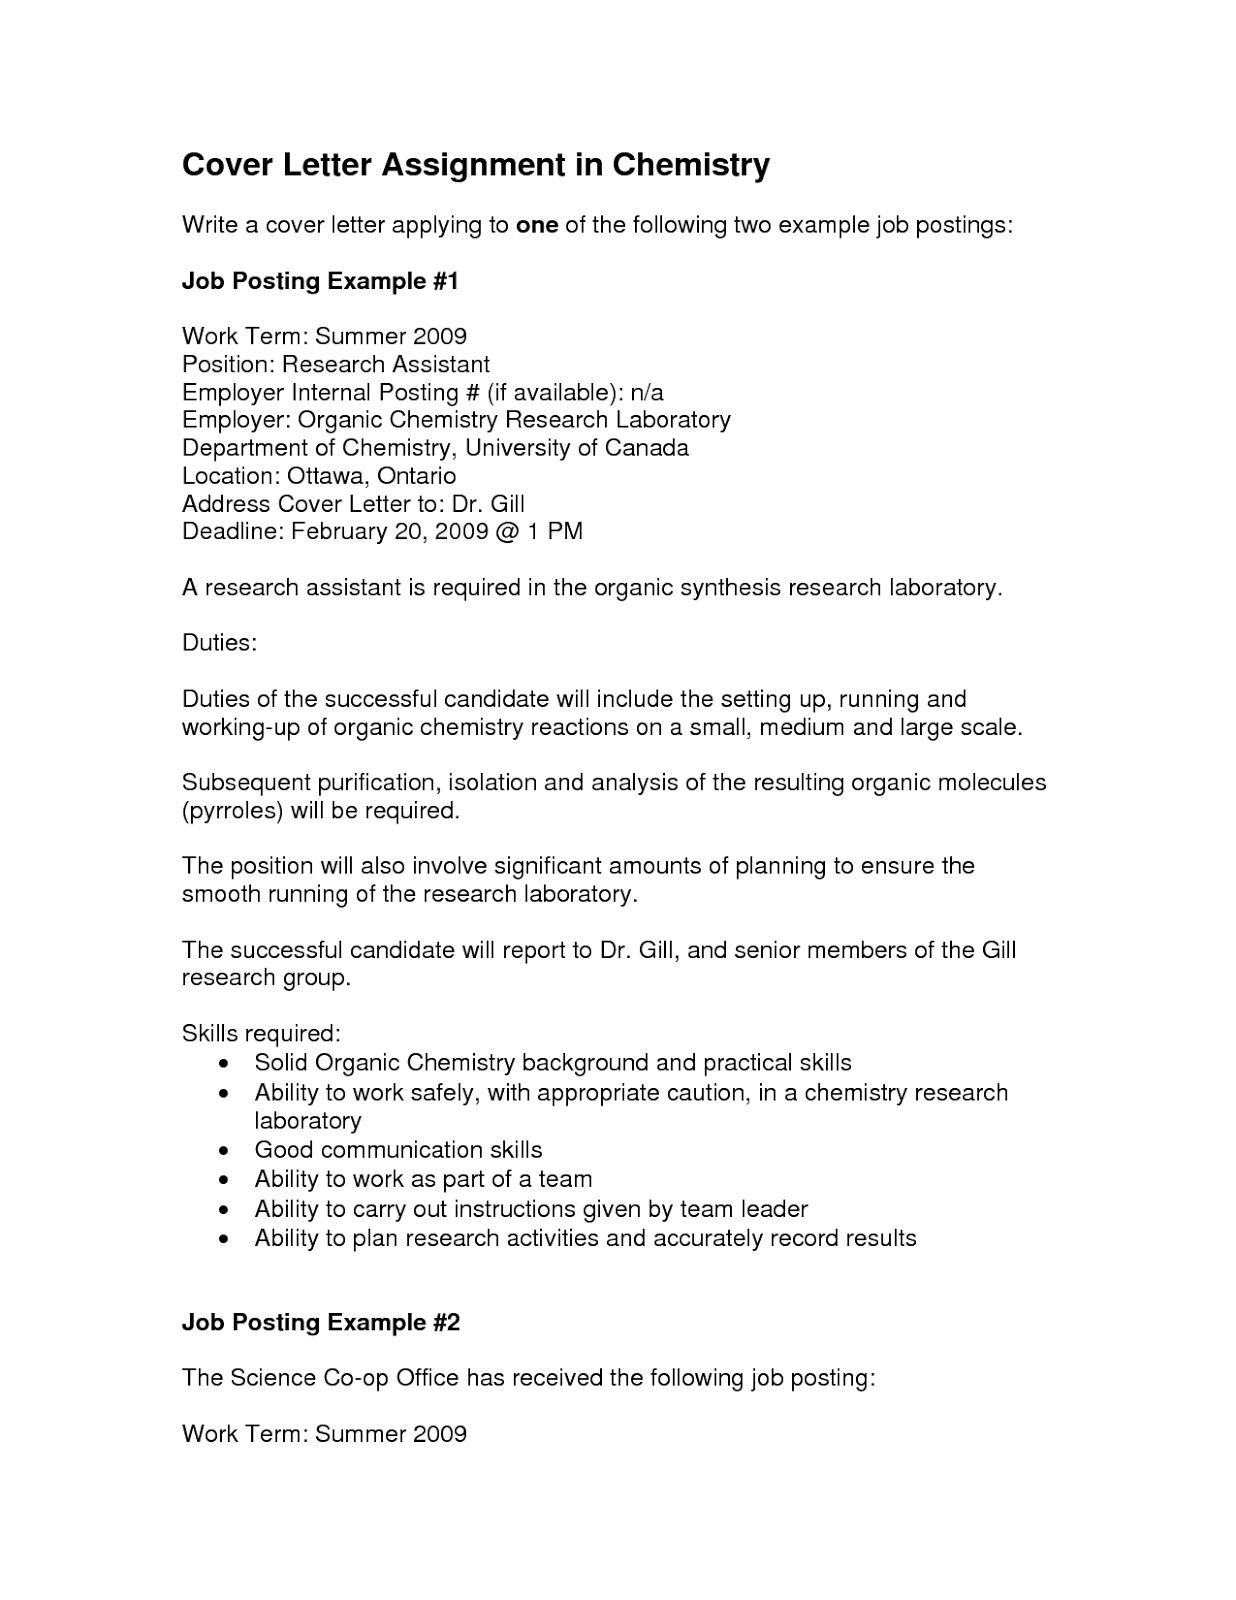 resume for internal position calep nightpig within job posting template word great cretiv Resume Resume For Internal Position